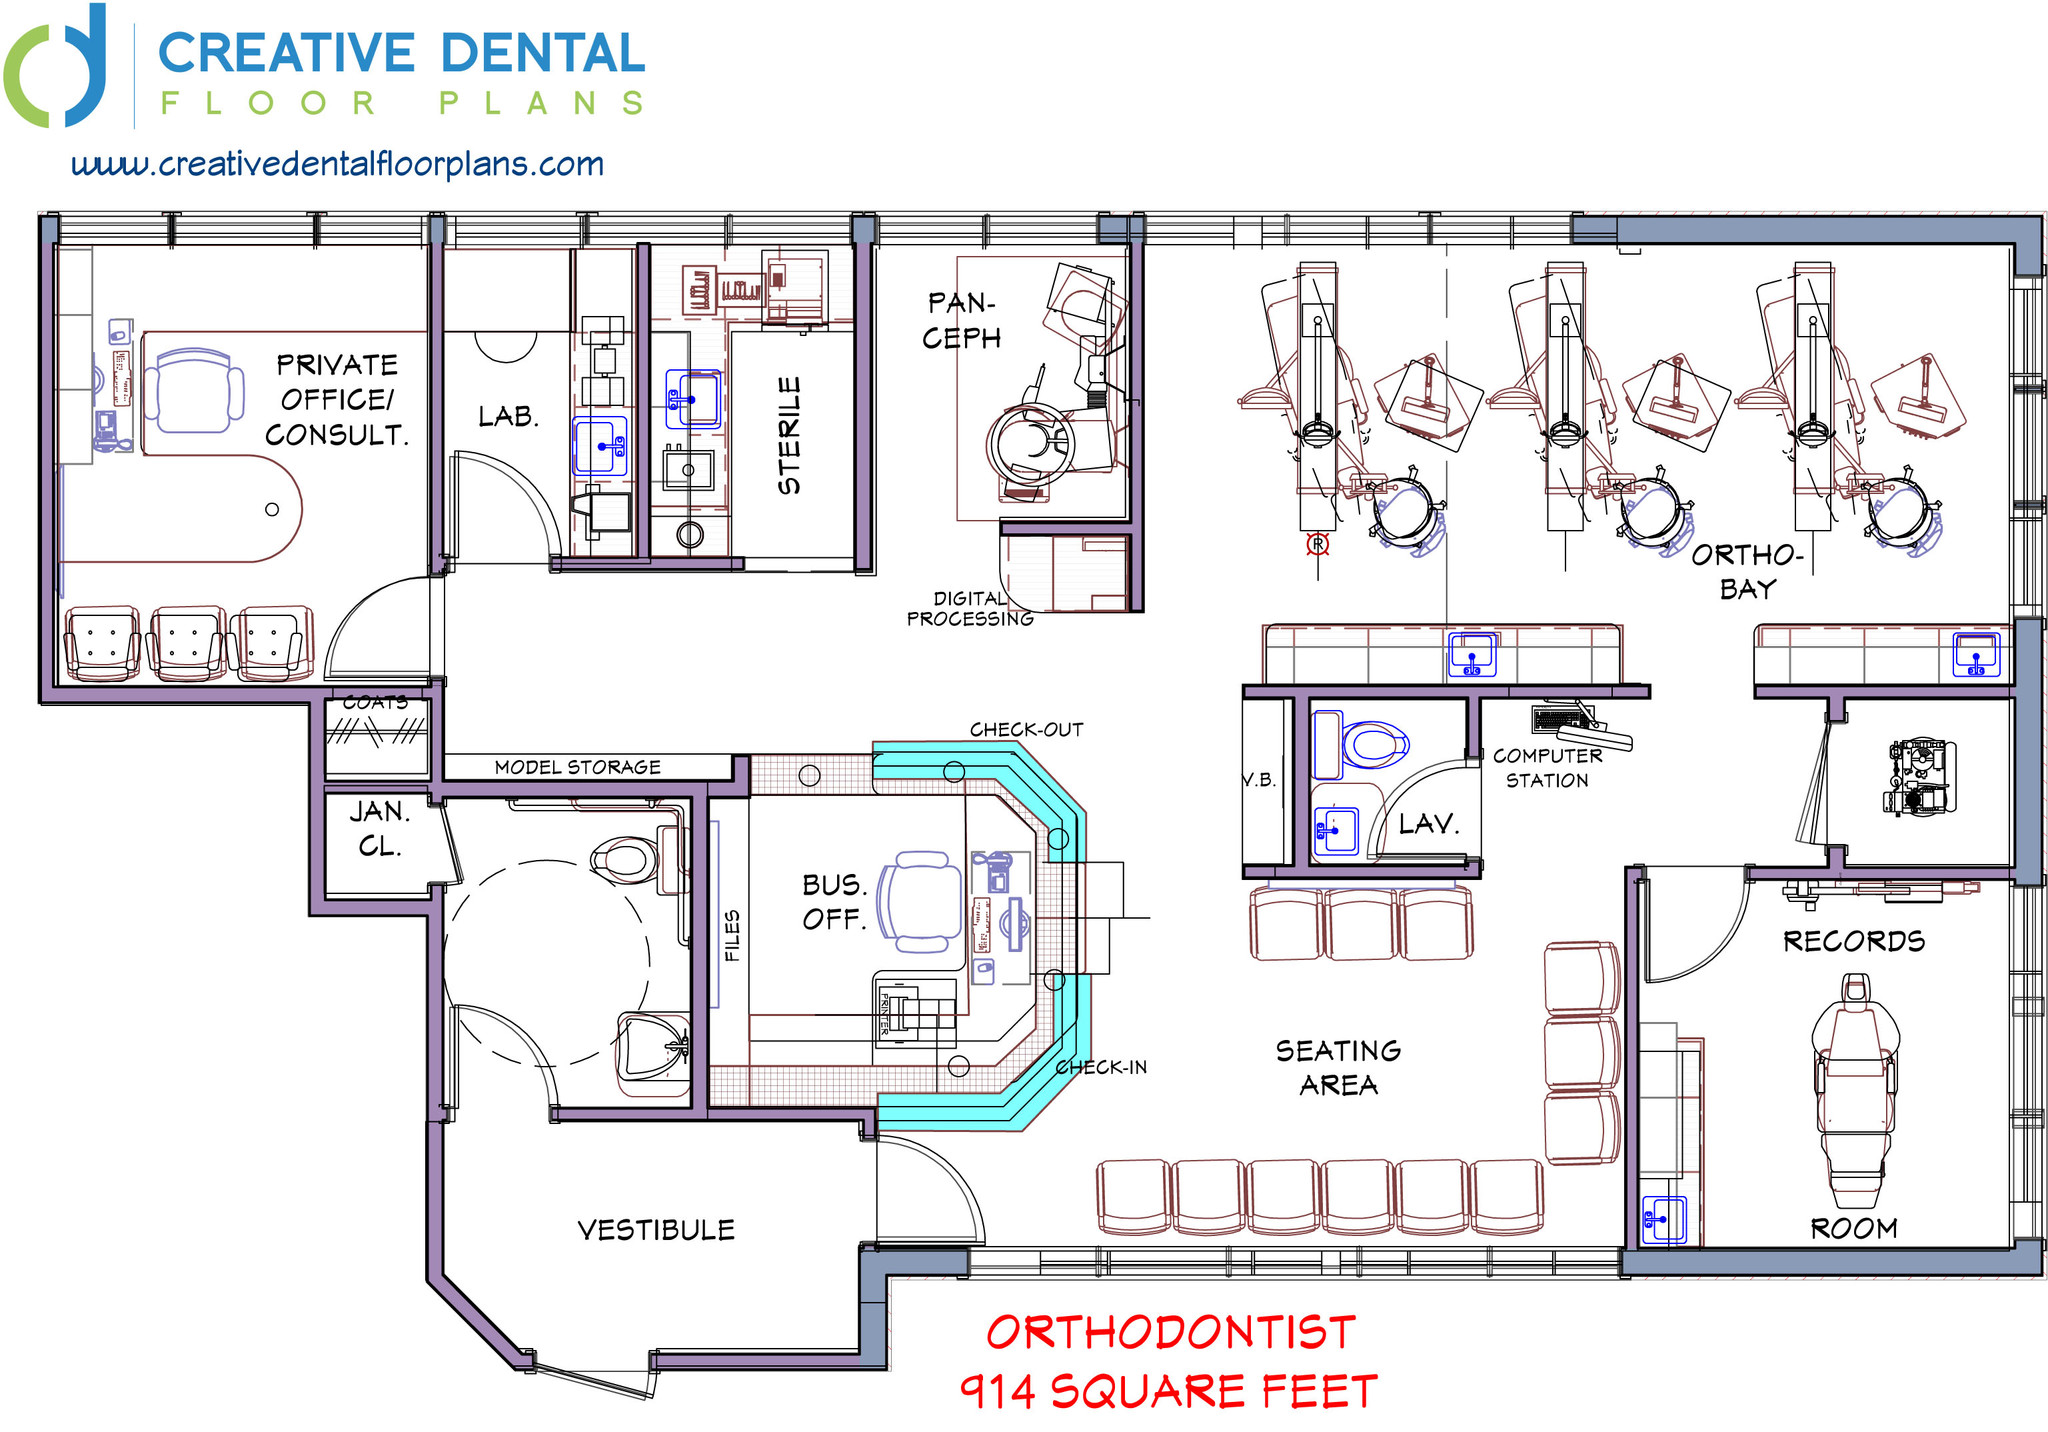 Orthodontic office design floor plan meze blog for Floor plan layout design